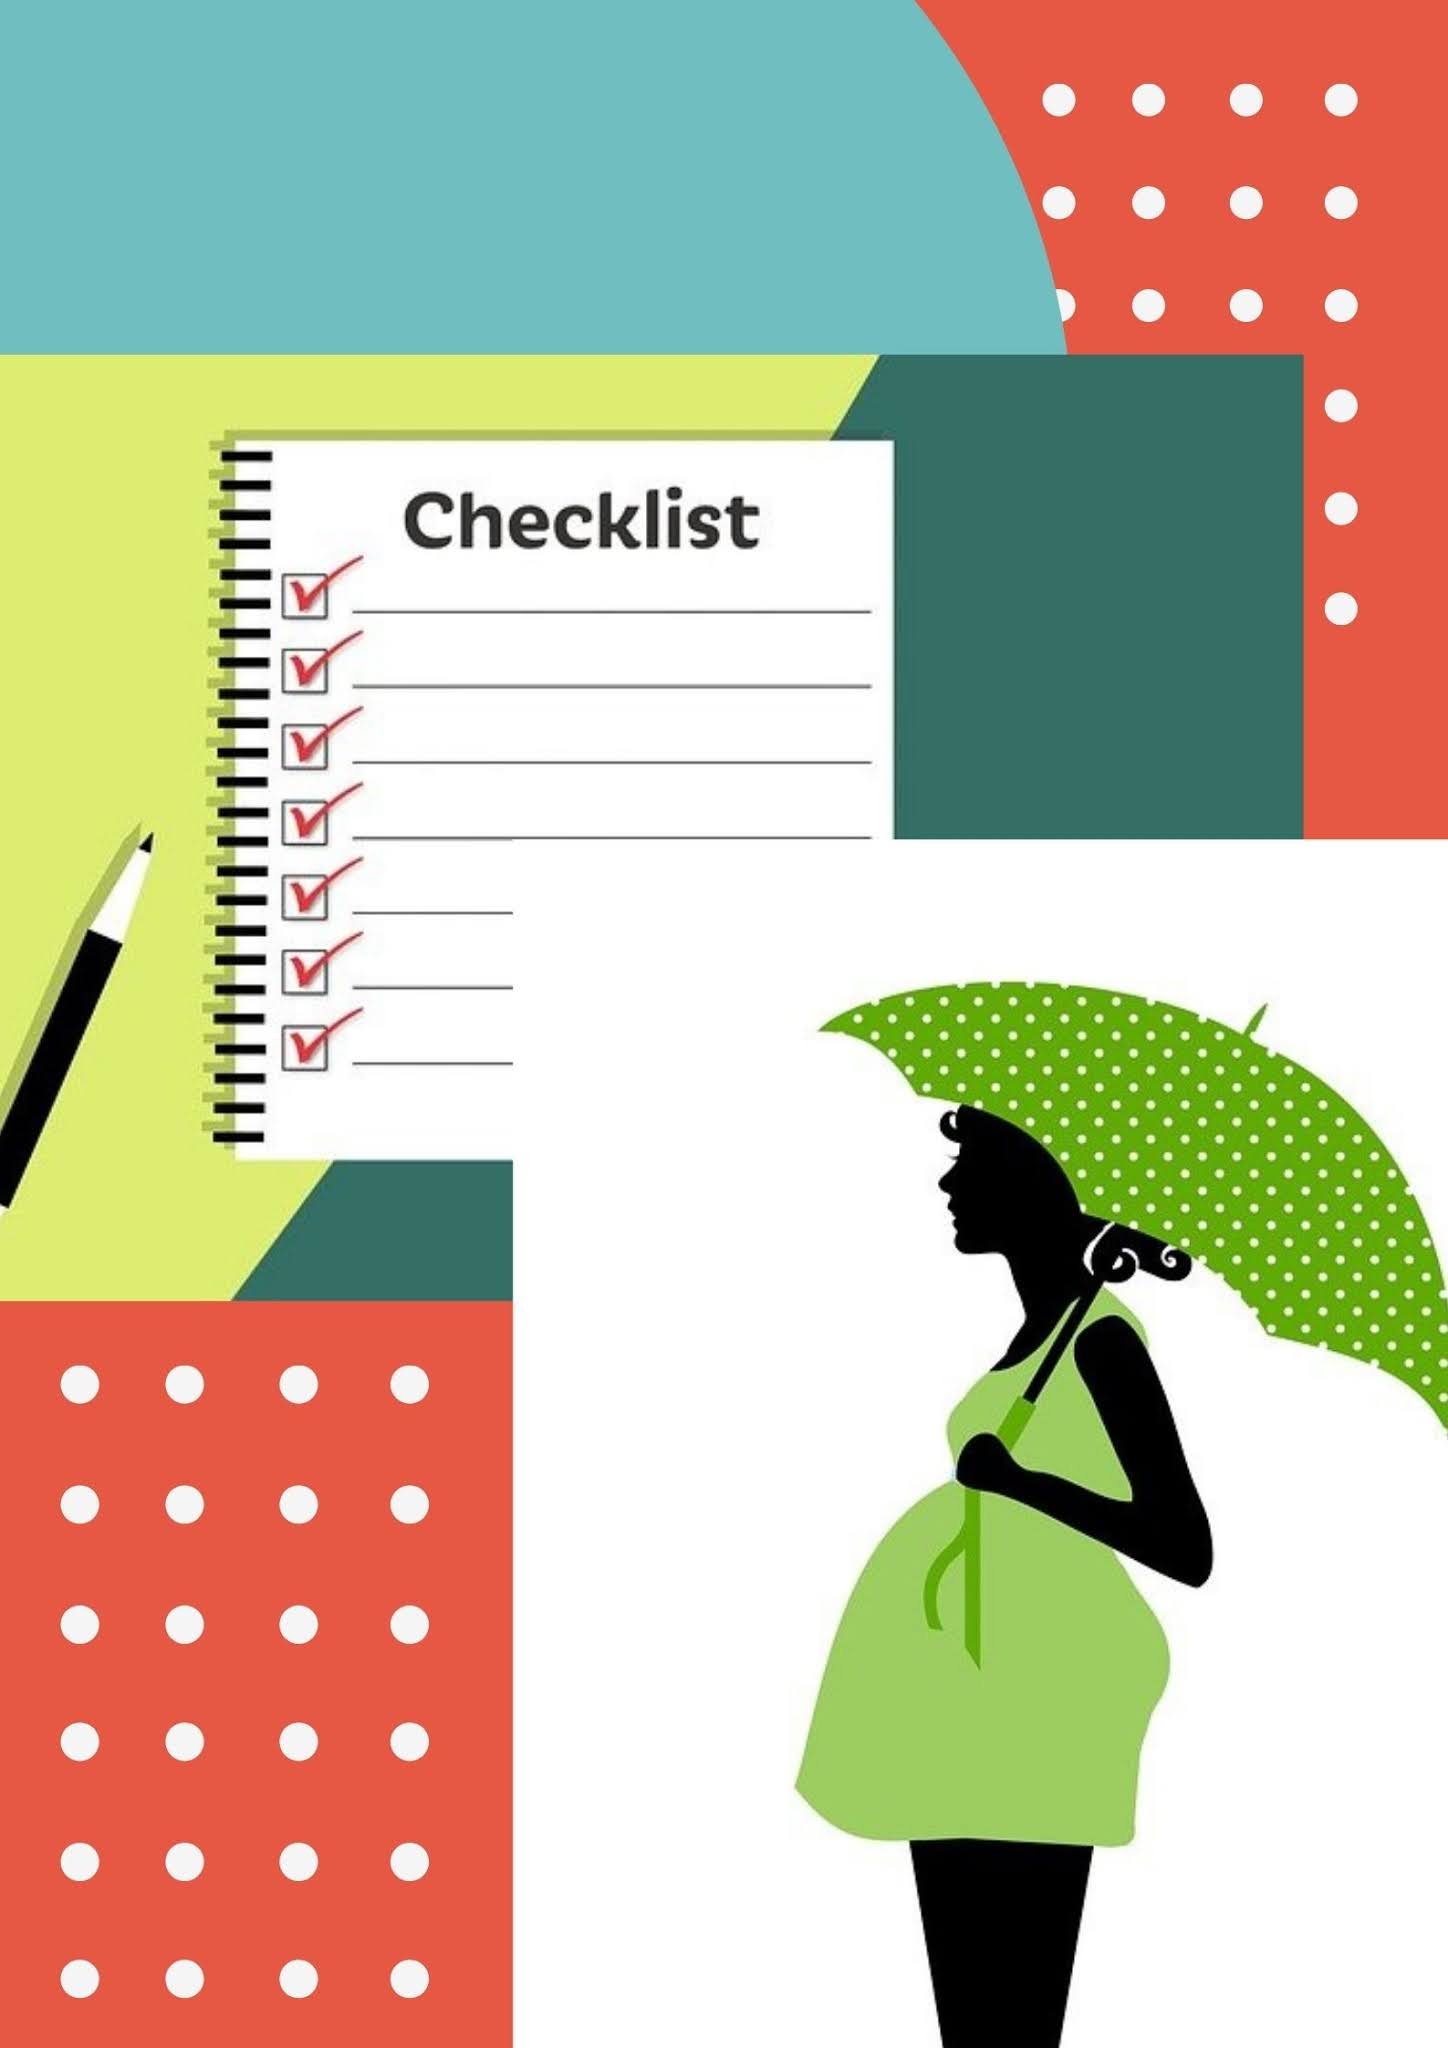 Checklist for first-time parents